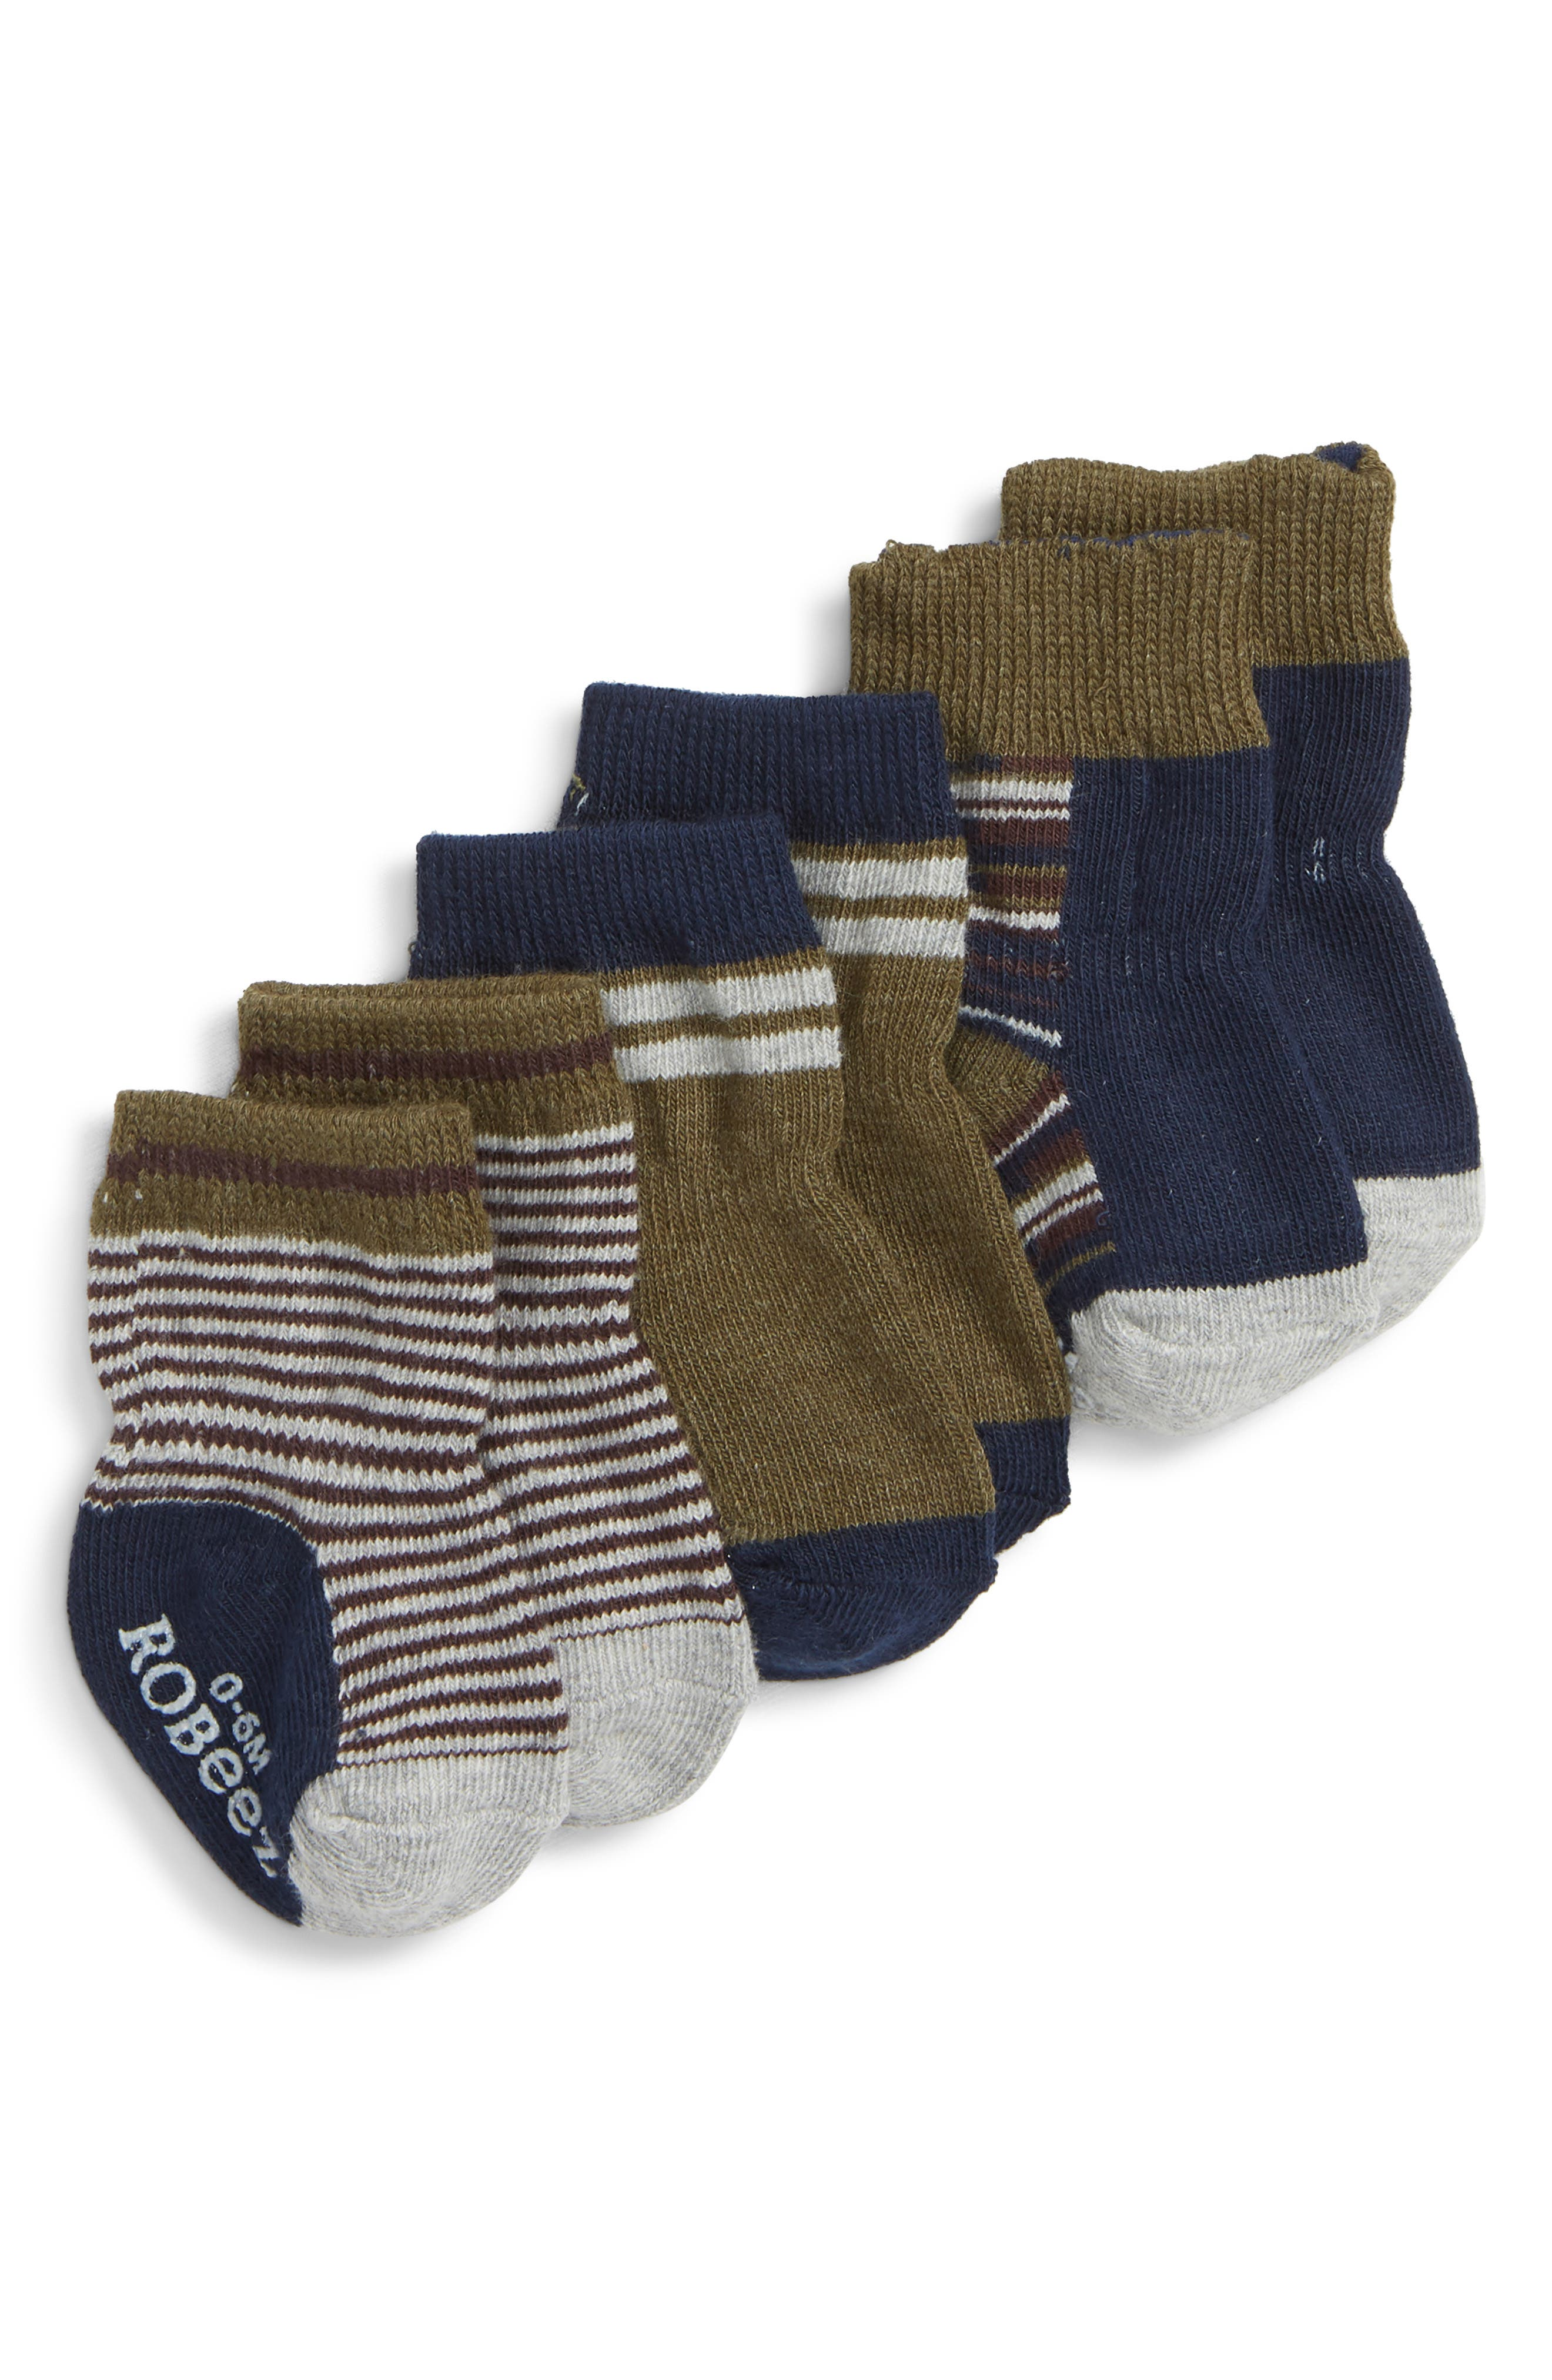 3-Pack Crew Socks,                         Main,                         color, OLIVE/ NAVY/ GREY